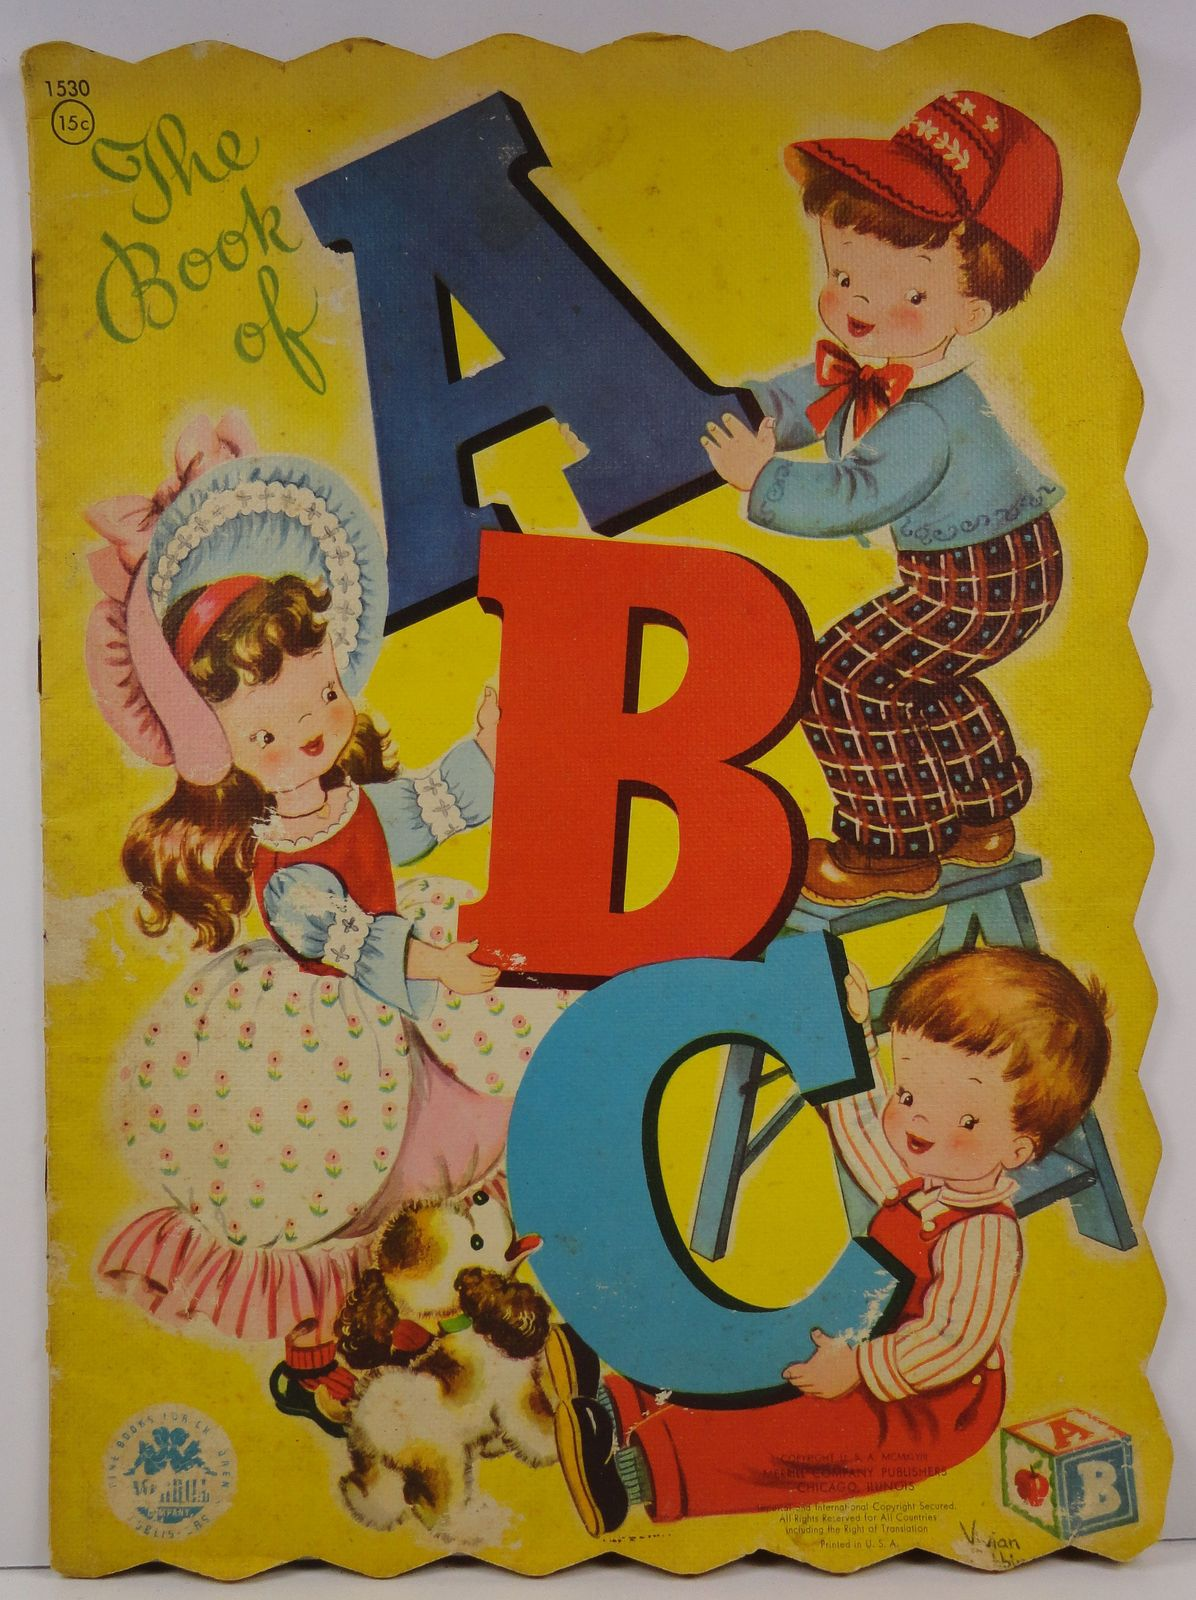 The Book of ABC Vivian Robbins Merrill Book No. 1530